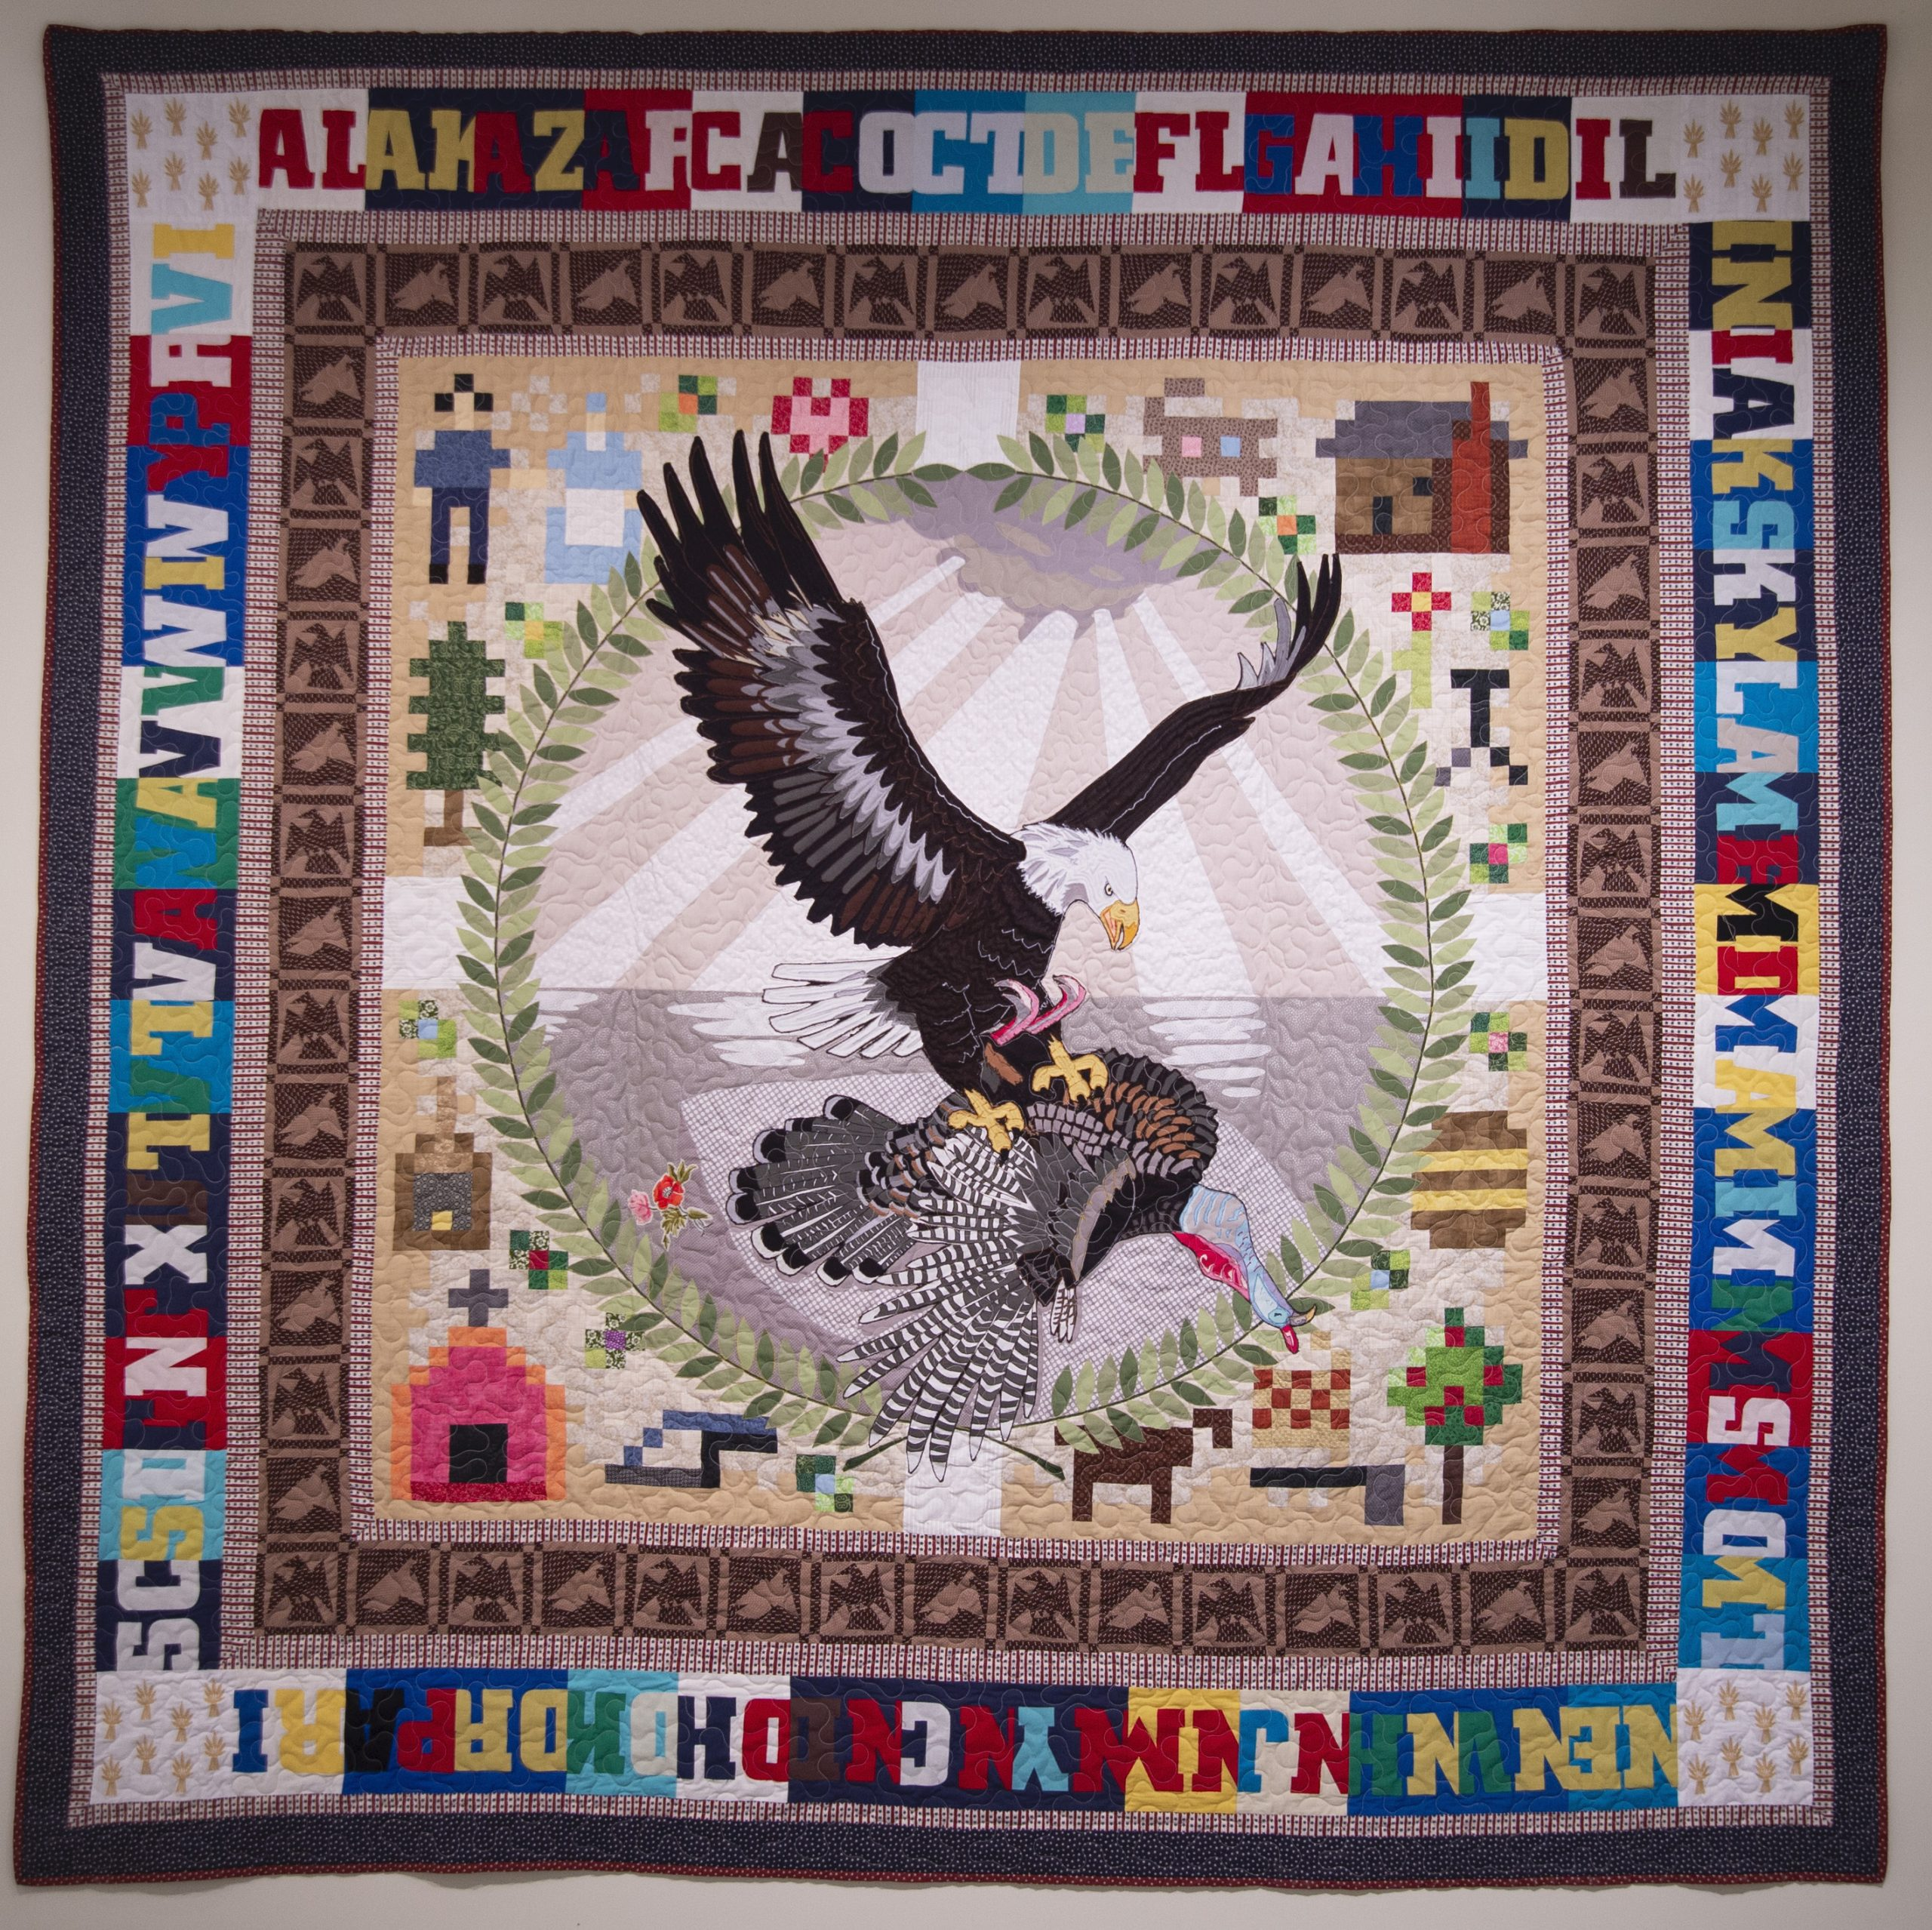 A Bicentennial quilt, featuring an eagle attacking a wild turkey, surrounded by a border of state abbreviations.